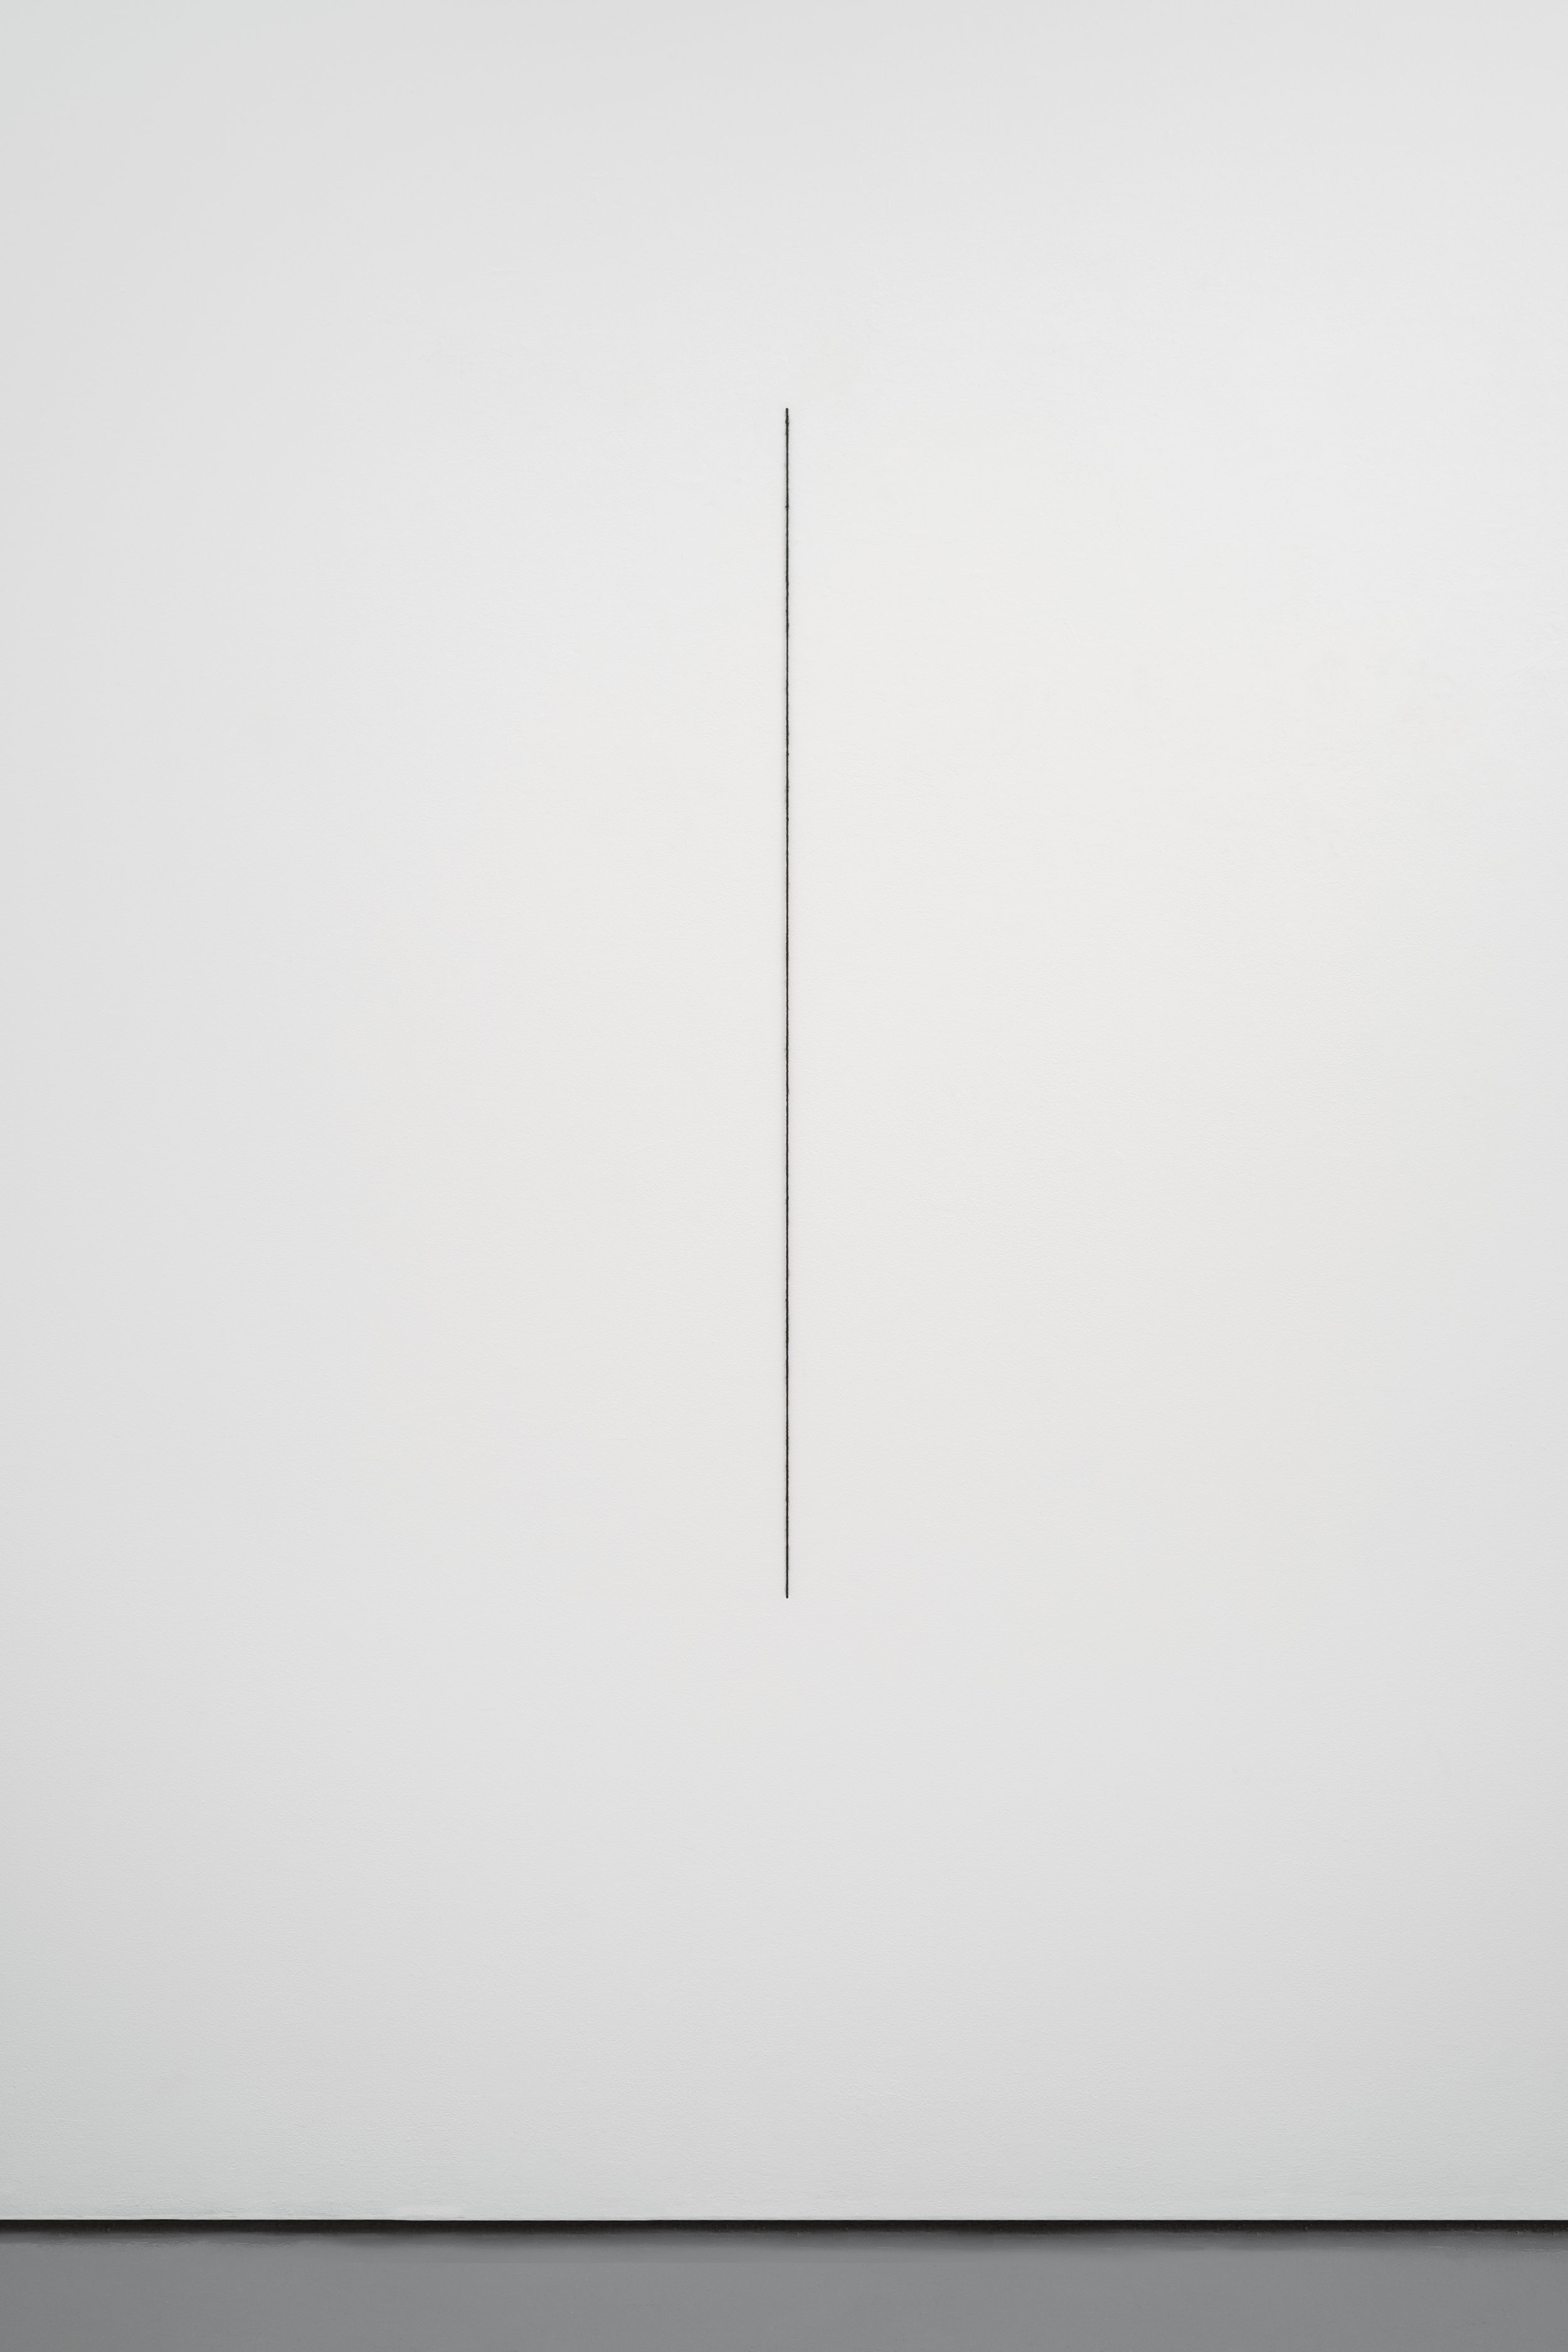 Untitled (Vertical Wall Construction